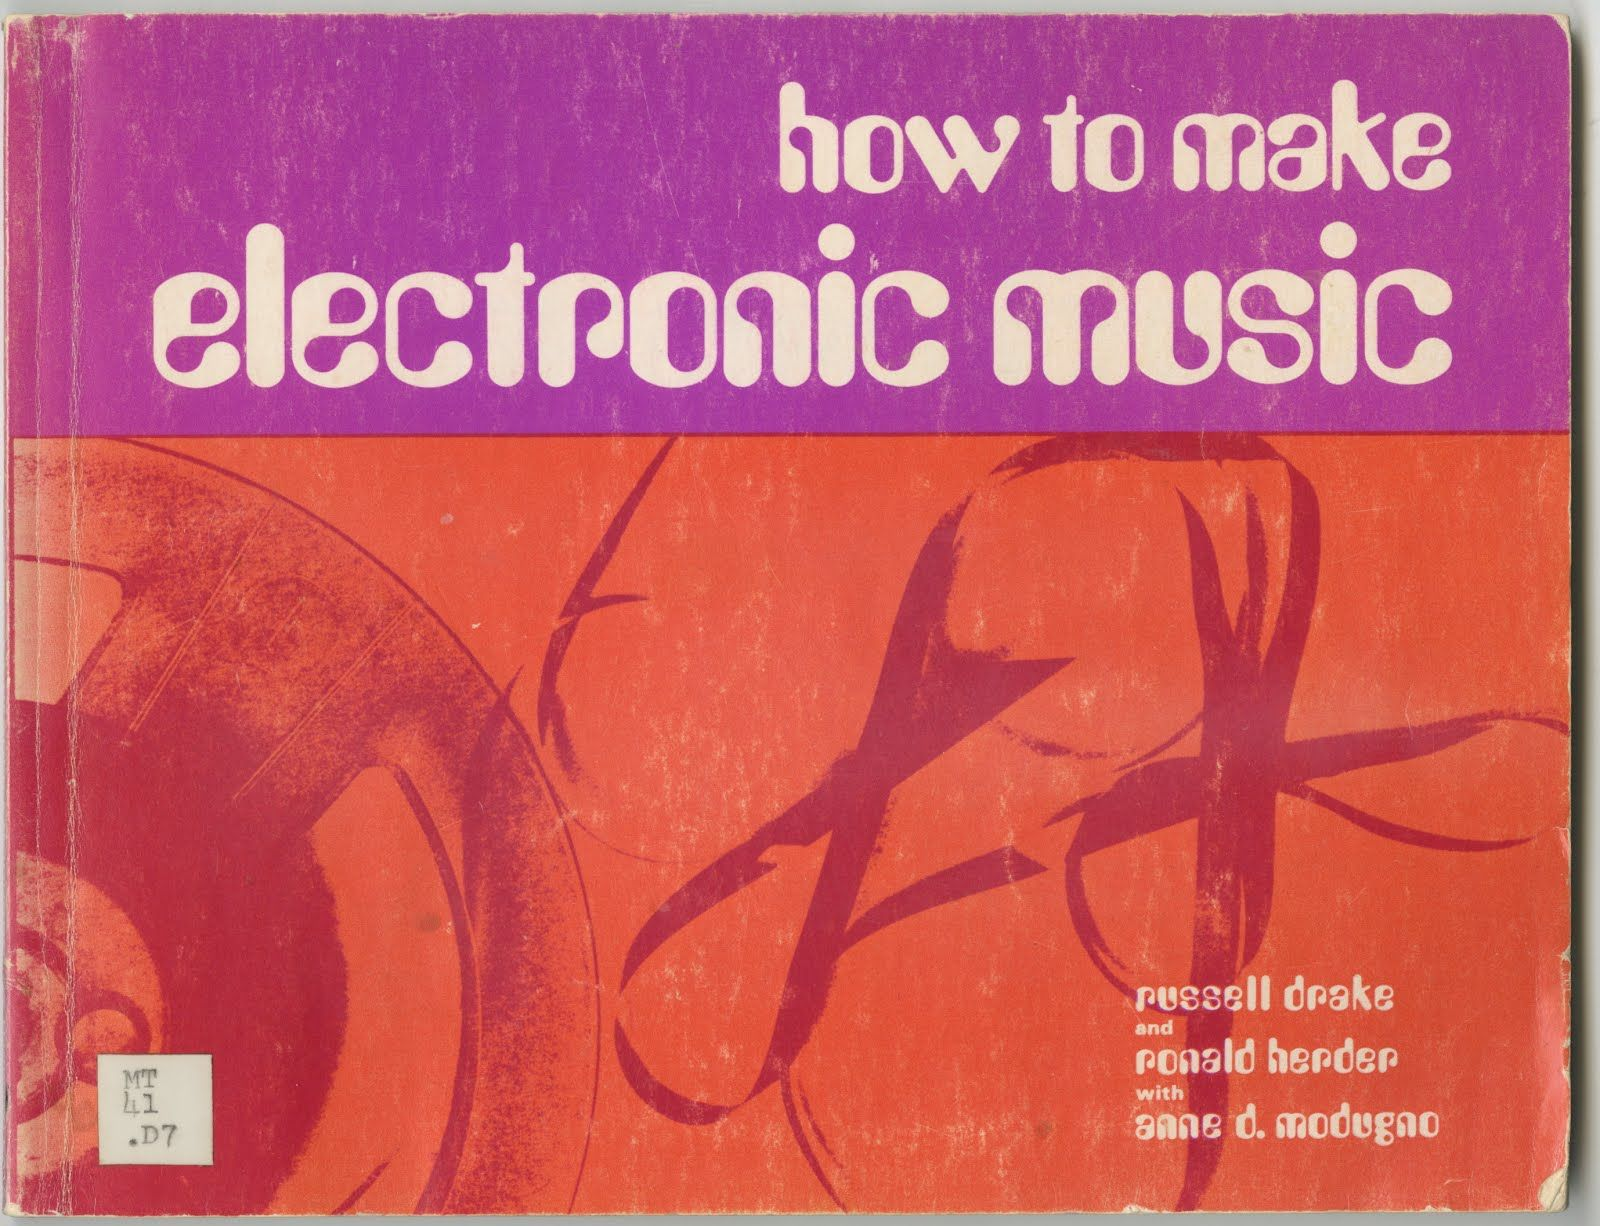 Libros Musica Electronica Retro How To Make Electronic Music I Smiled Wit Humor Etc